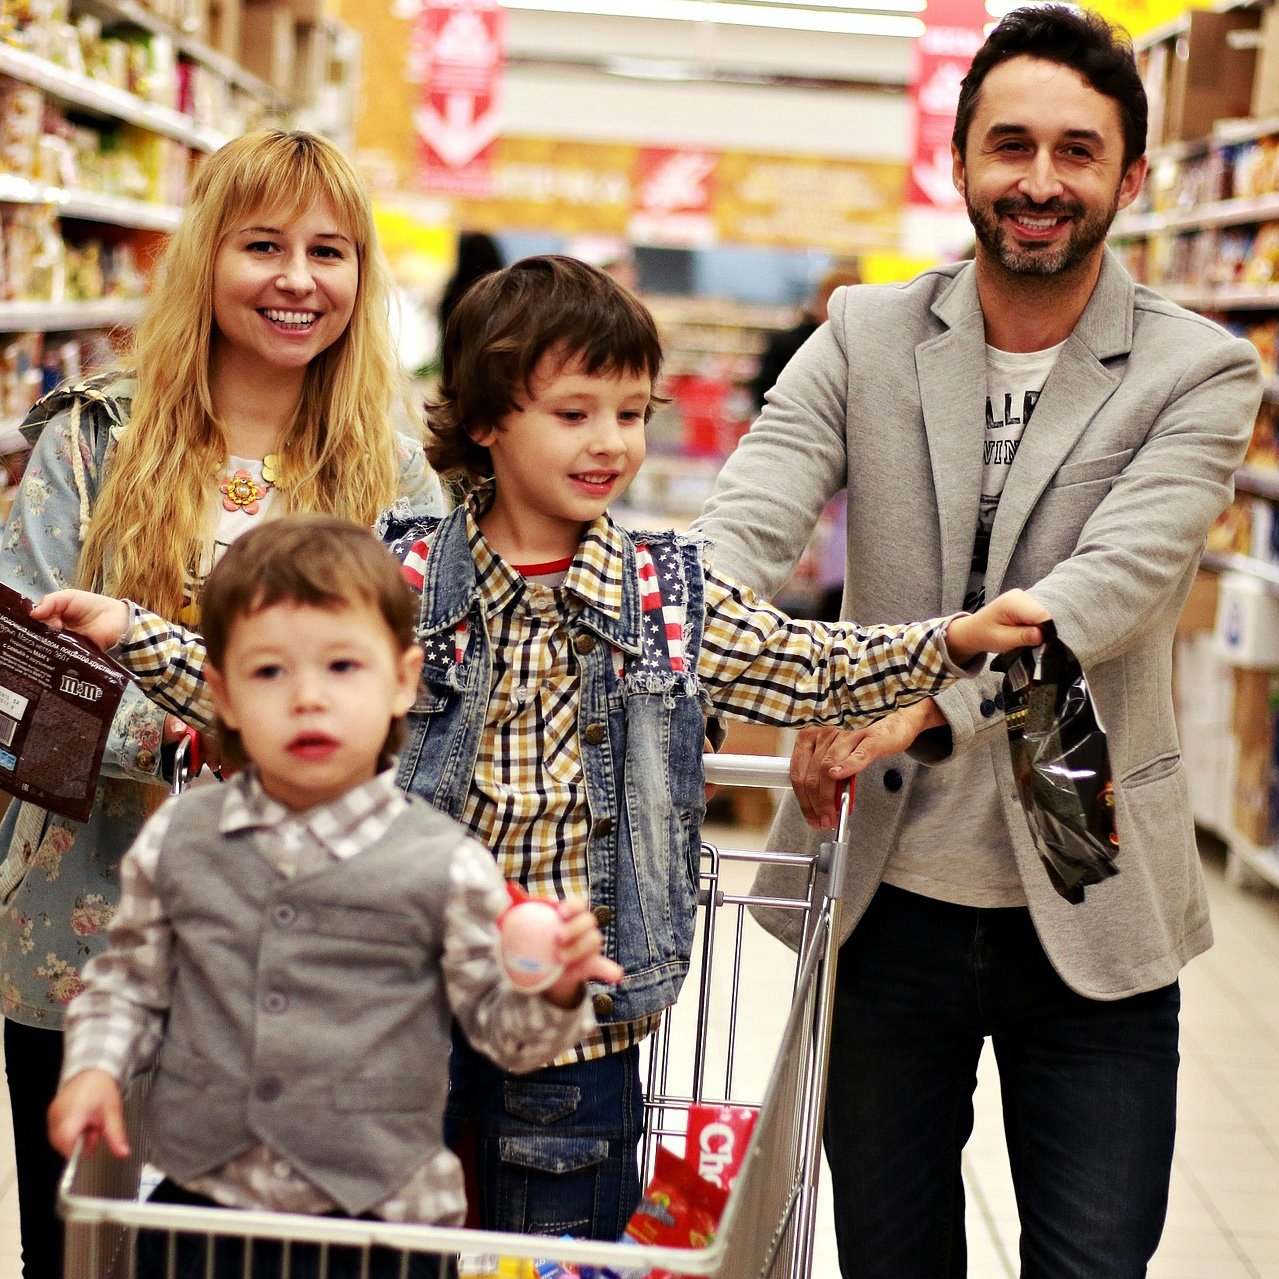 family in a grocery store